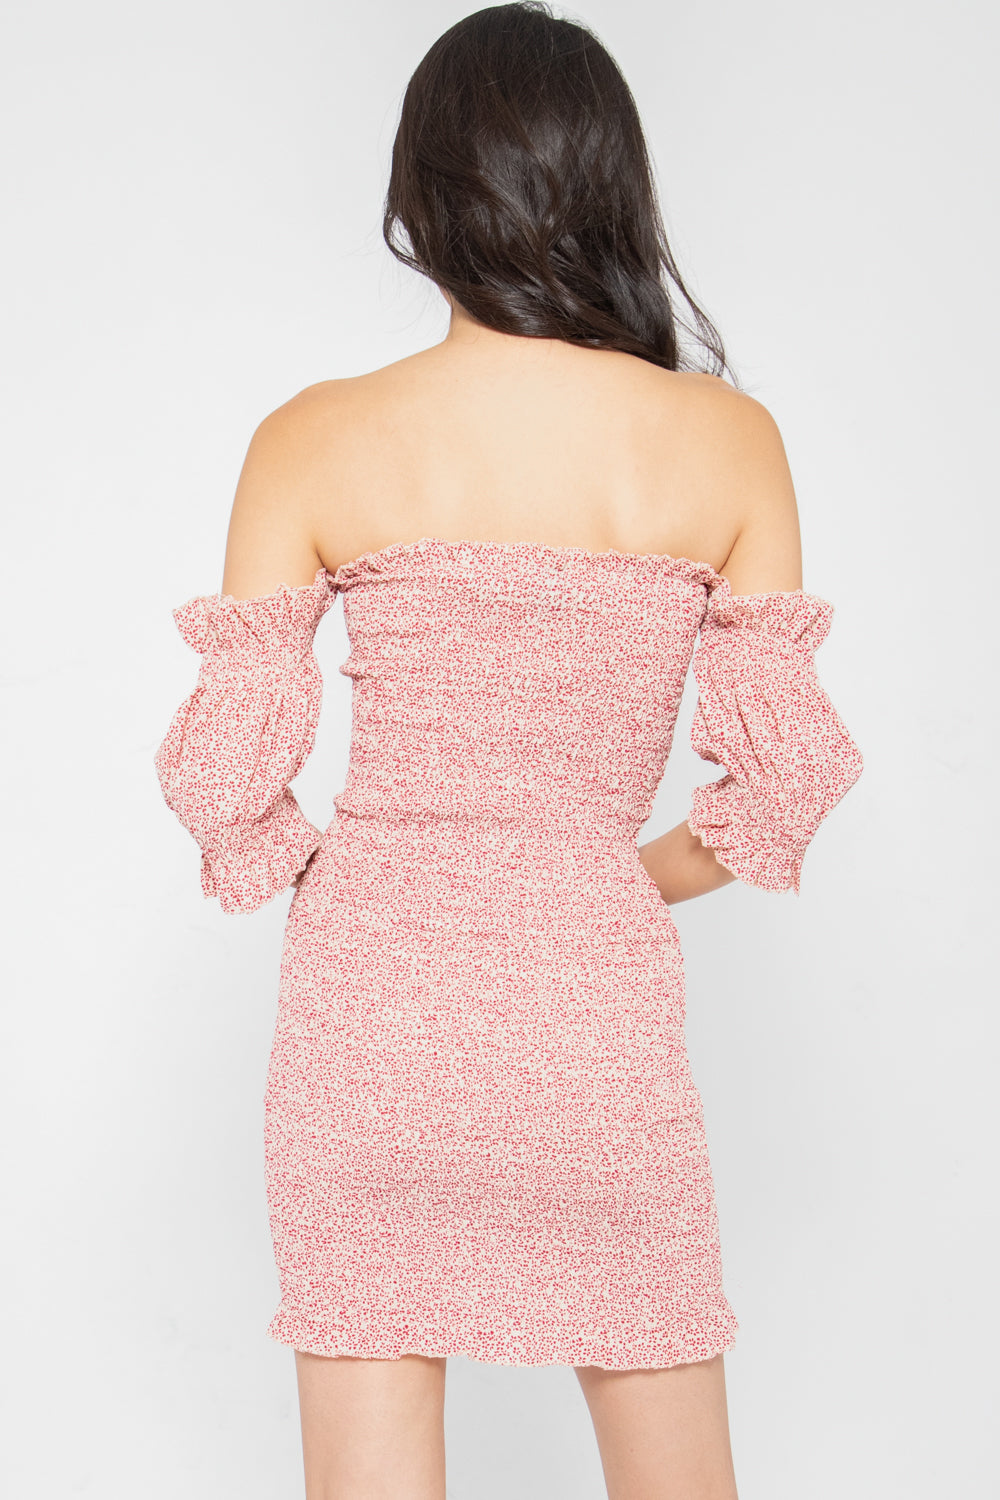 Avery Floral Smocked Off Shoulder Dress in Pink - Three One Duo